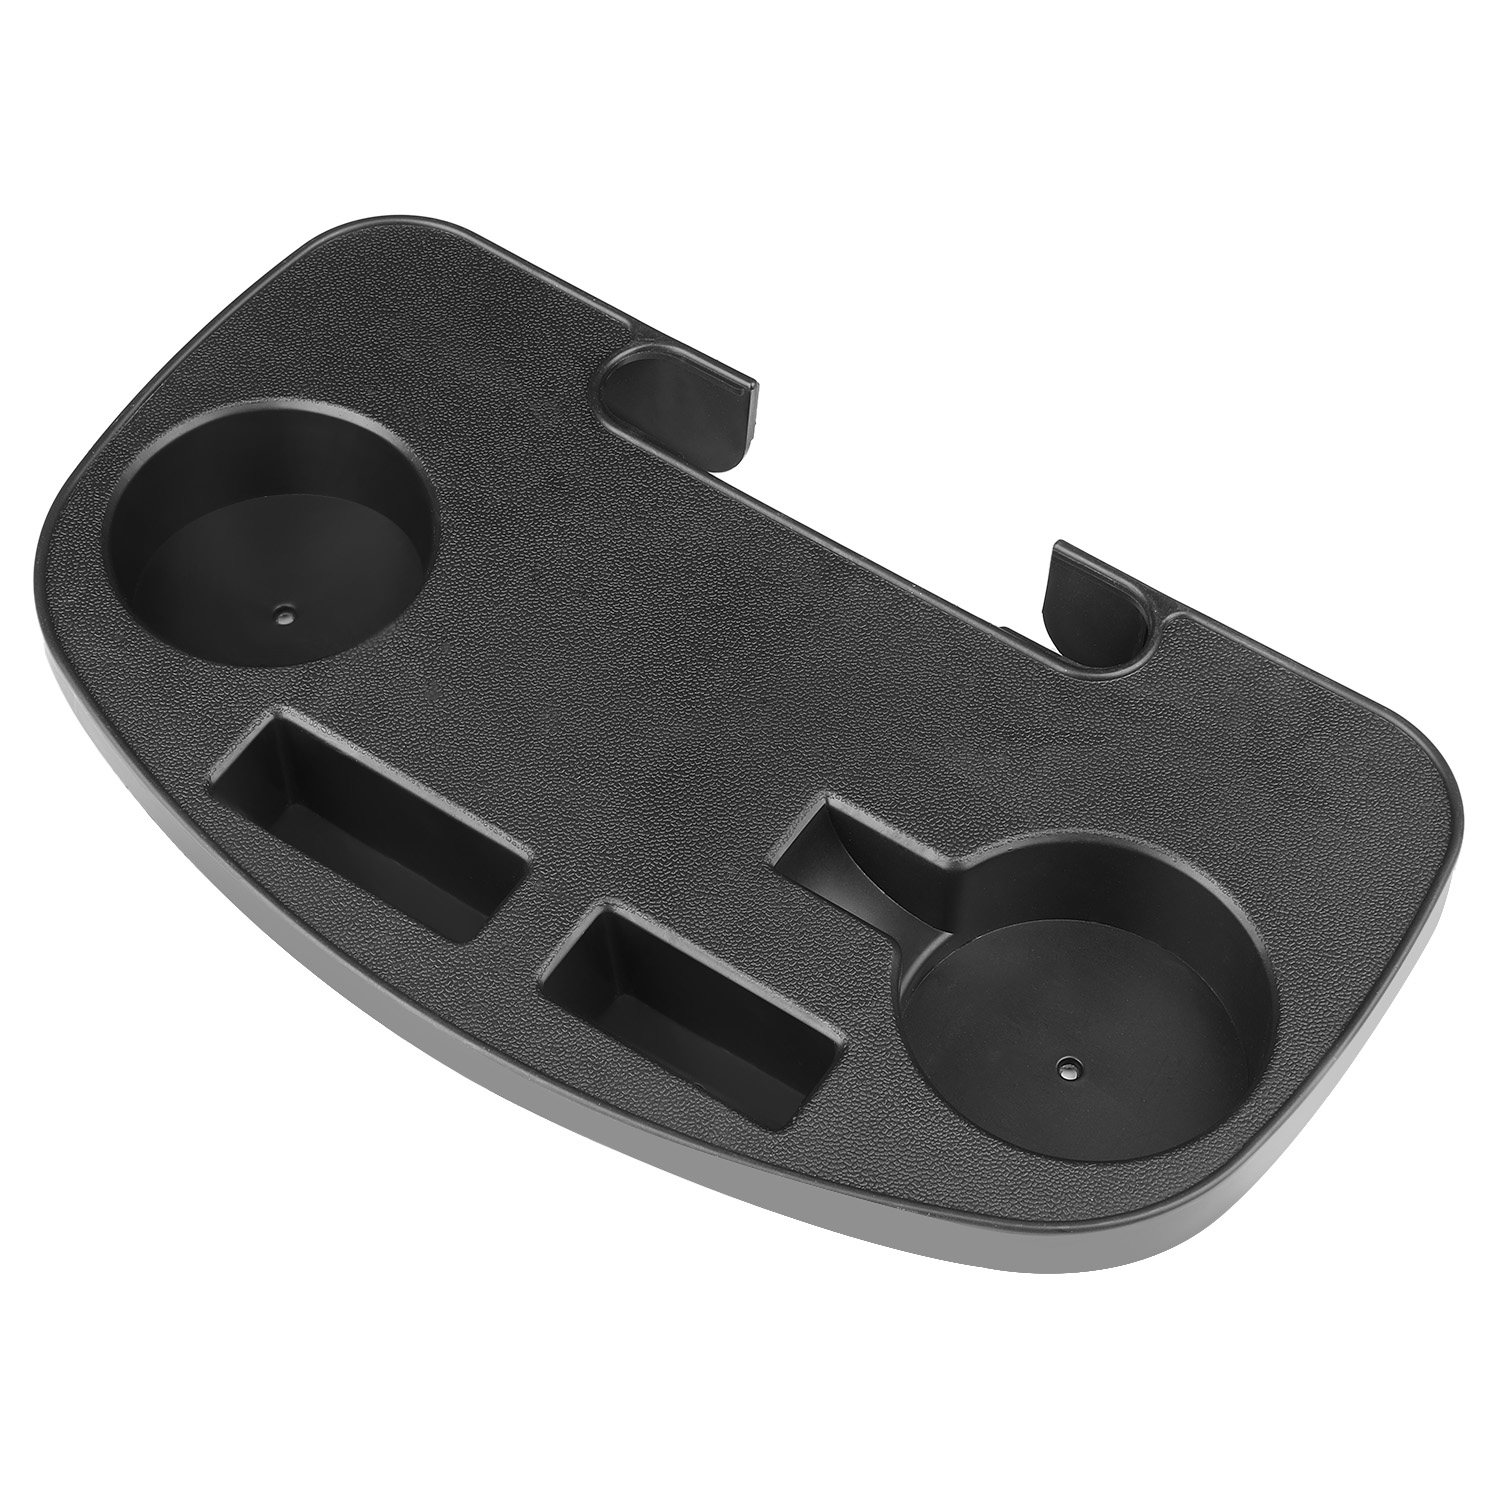 Details About Universal Oval Zero Gravity Chair Cup Holder Recliner Drink Utility Tray M